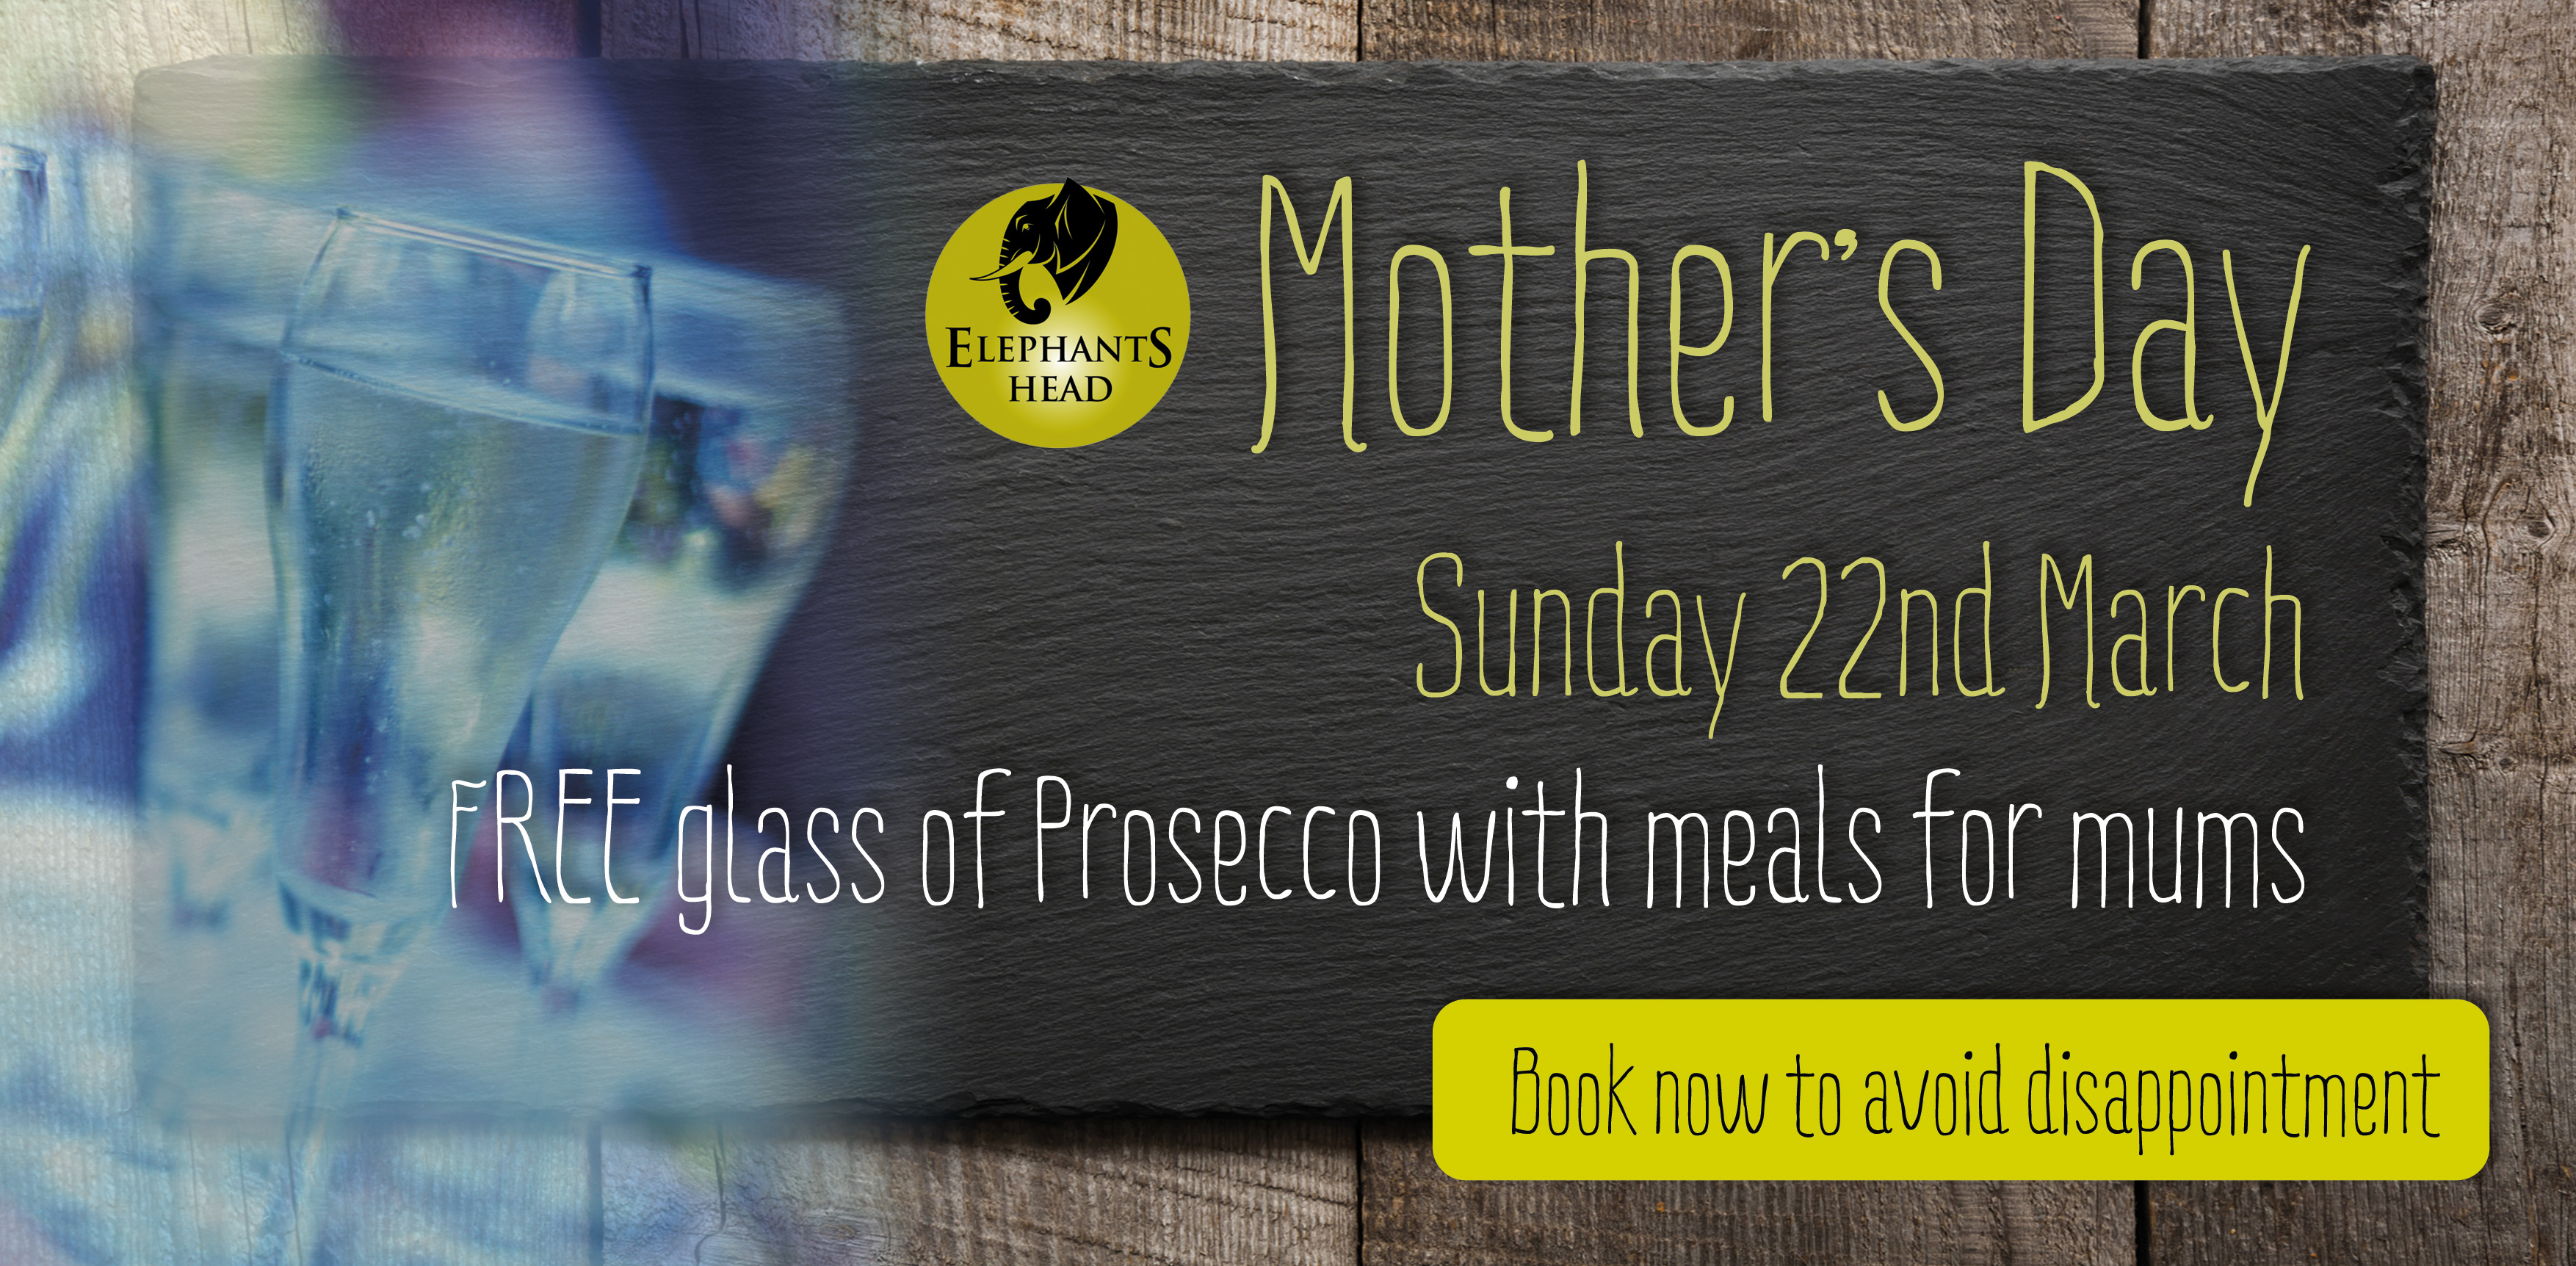 Mothers Day at The Elephants Head